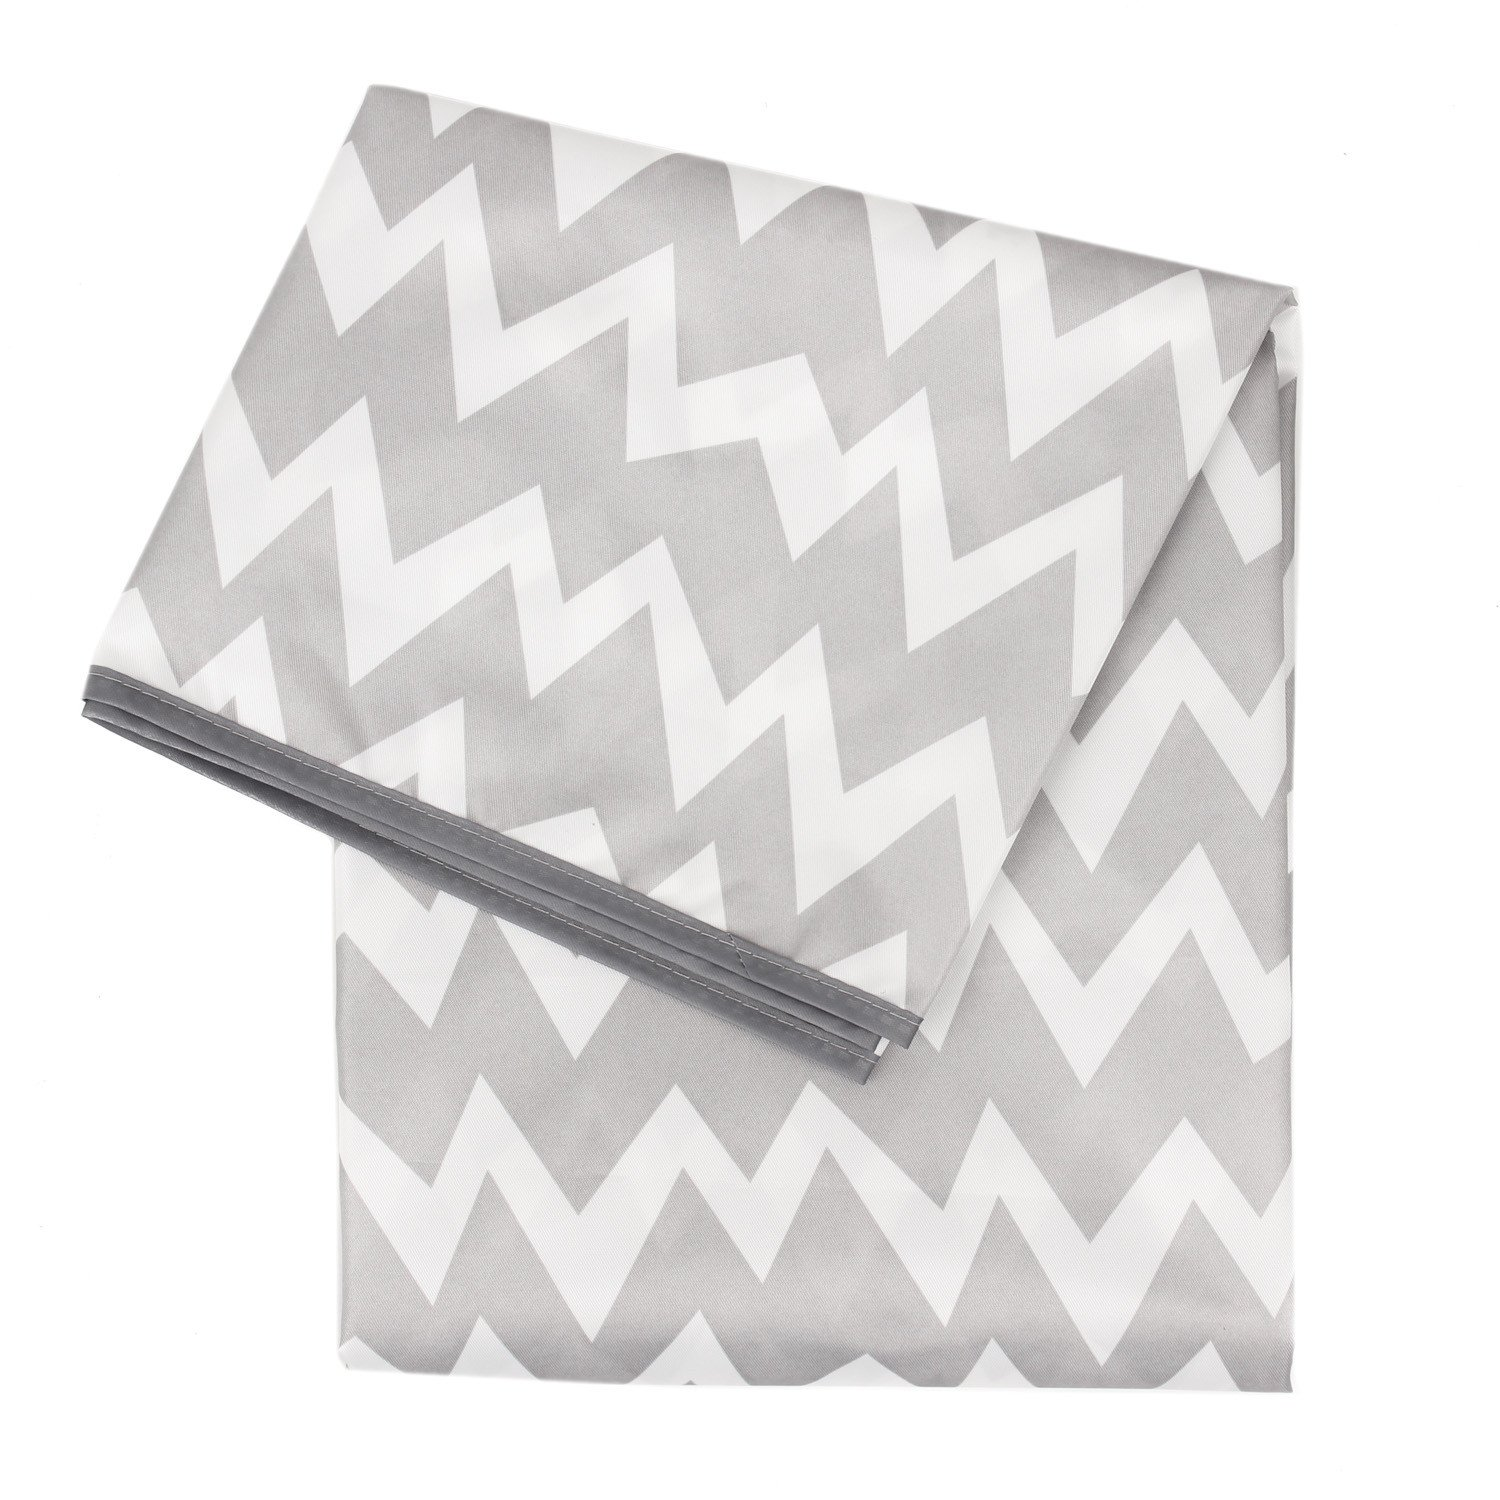 Bumkins Splat Mat, Waterproof, Washable for Floor or Table, Under Highchairs, Art, Crafts, Playtime 42x42 - Gray Chevron